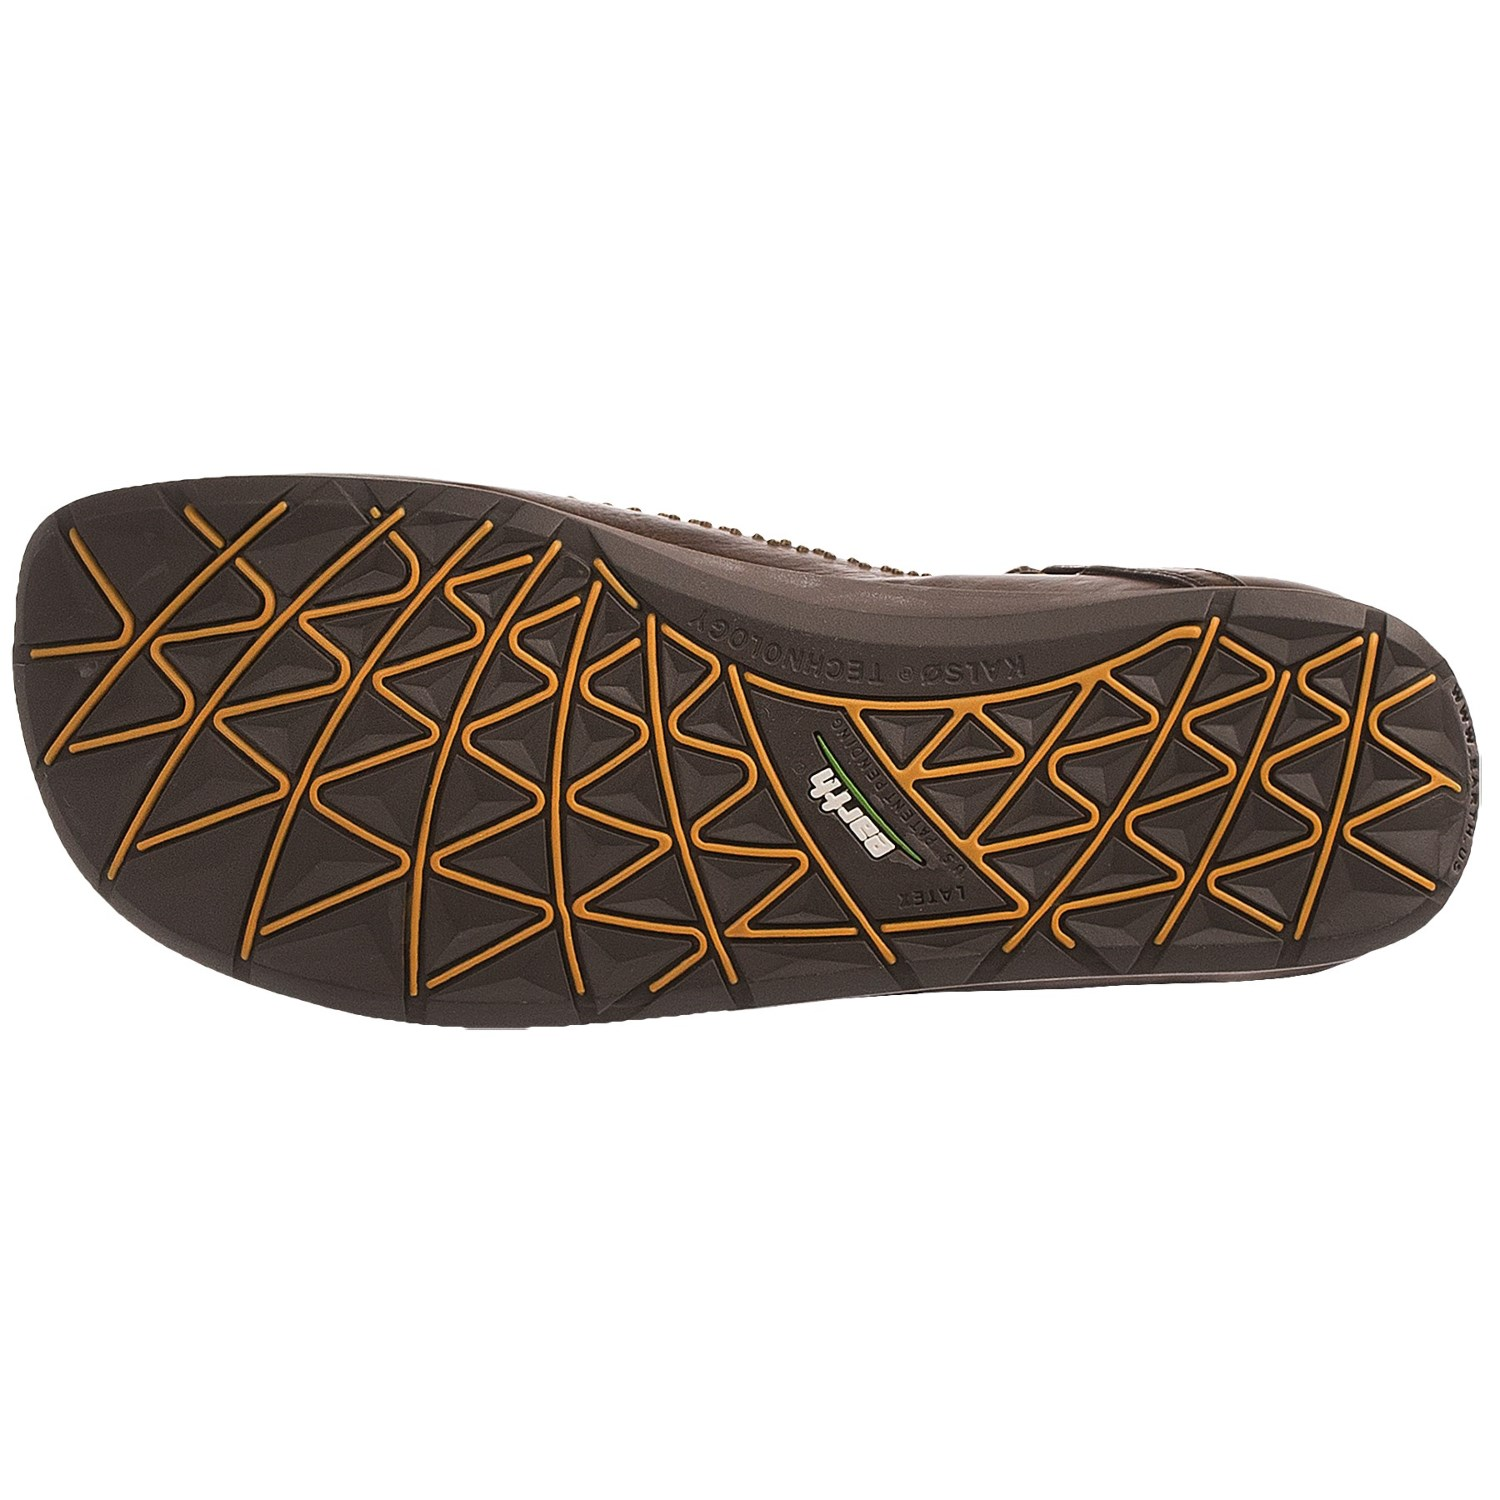 Kalso Earth Solar Too Mary Jane Shoes (For Women) 7452F